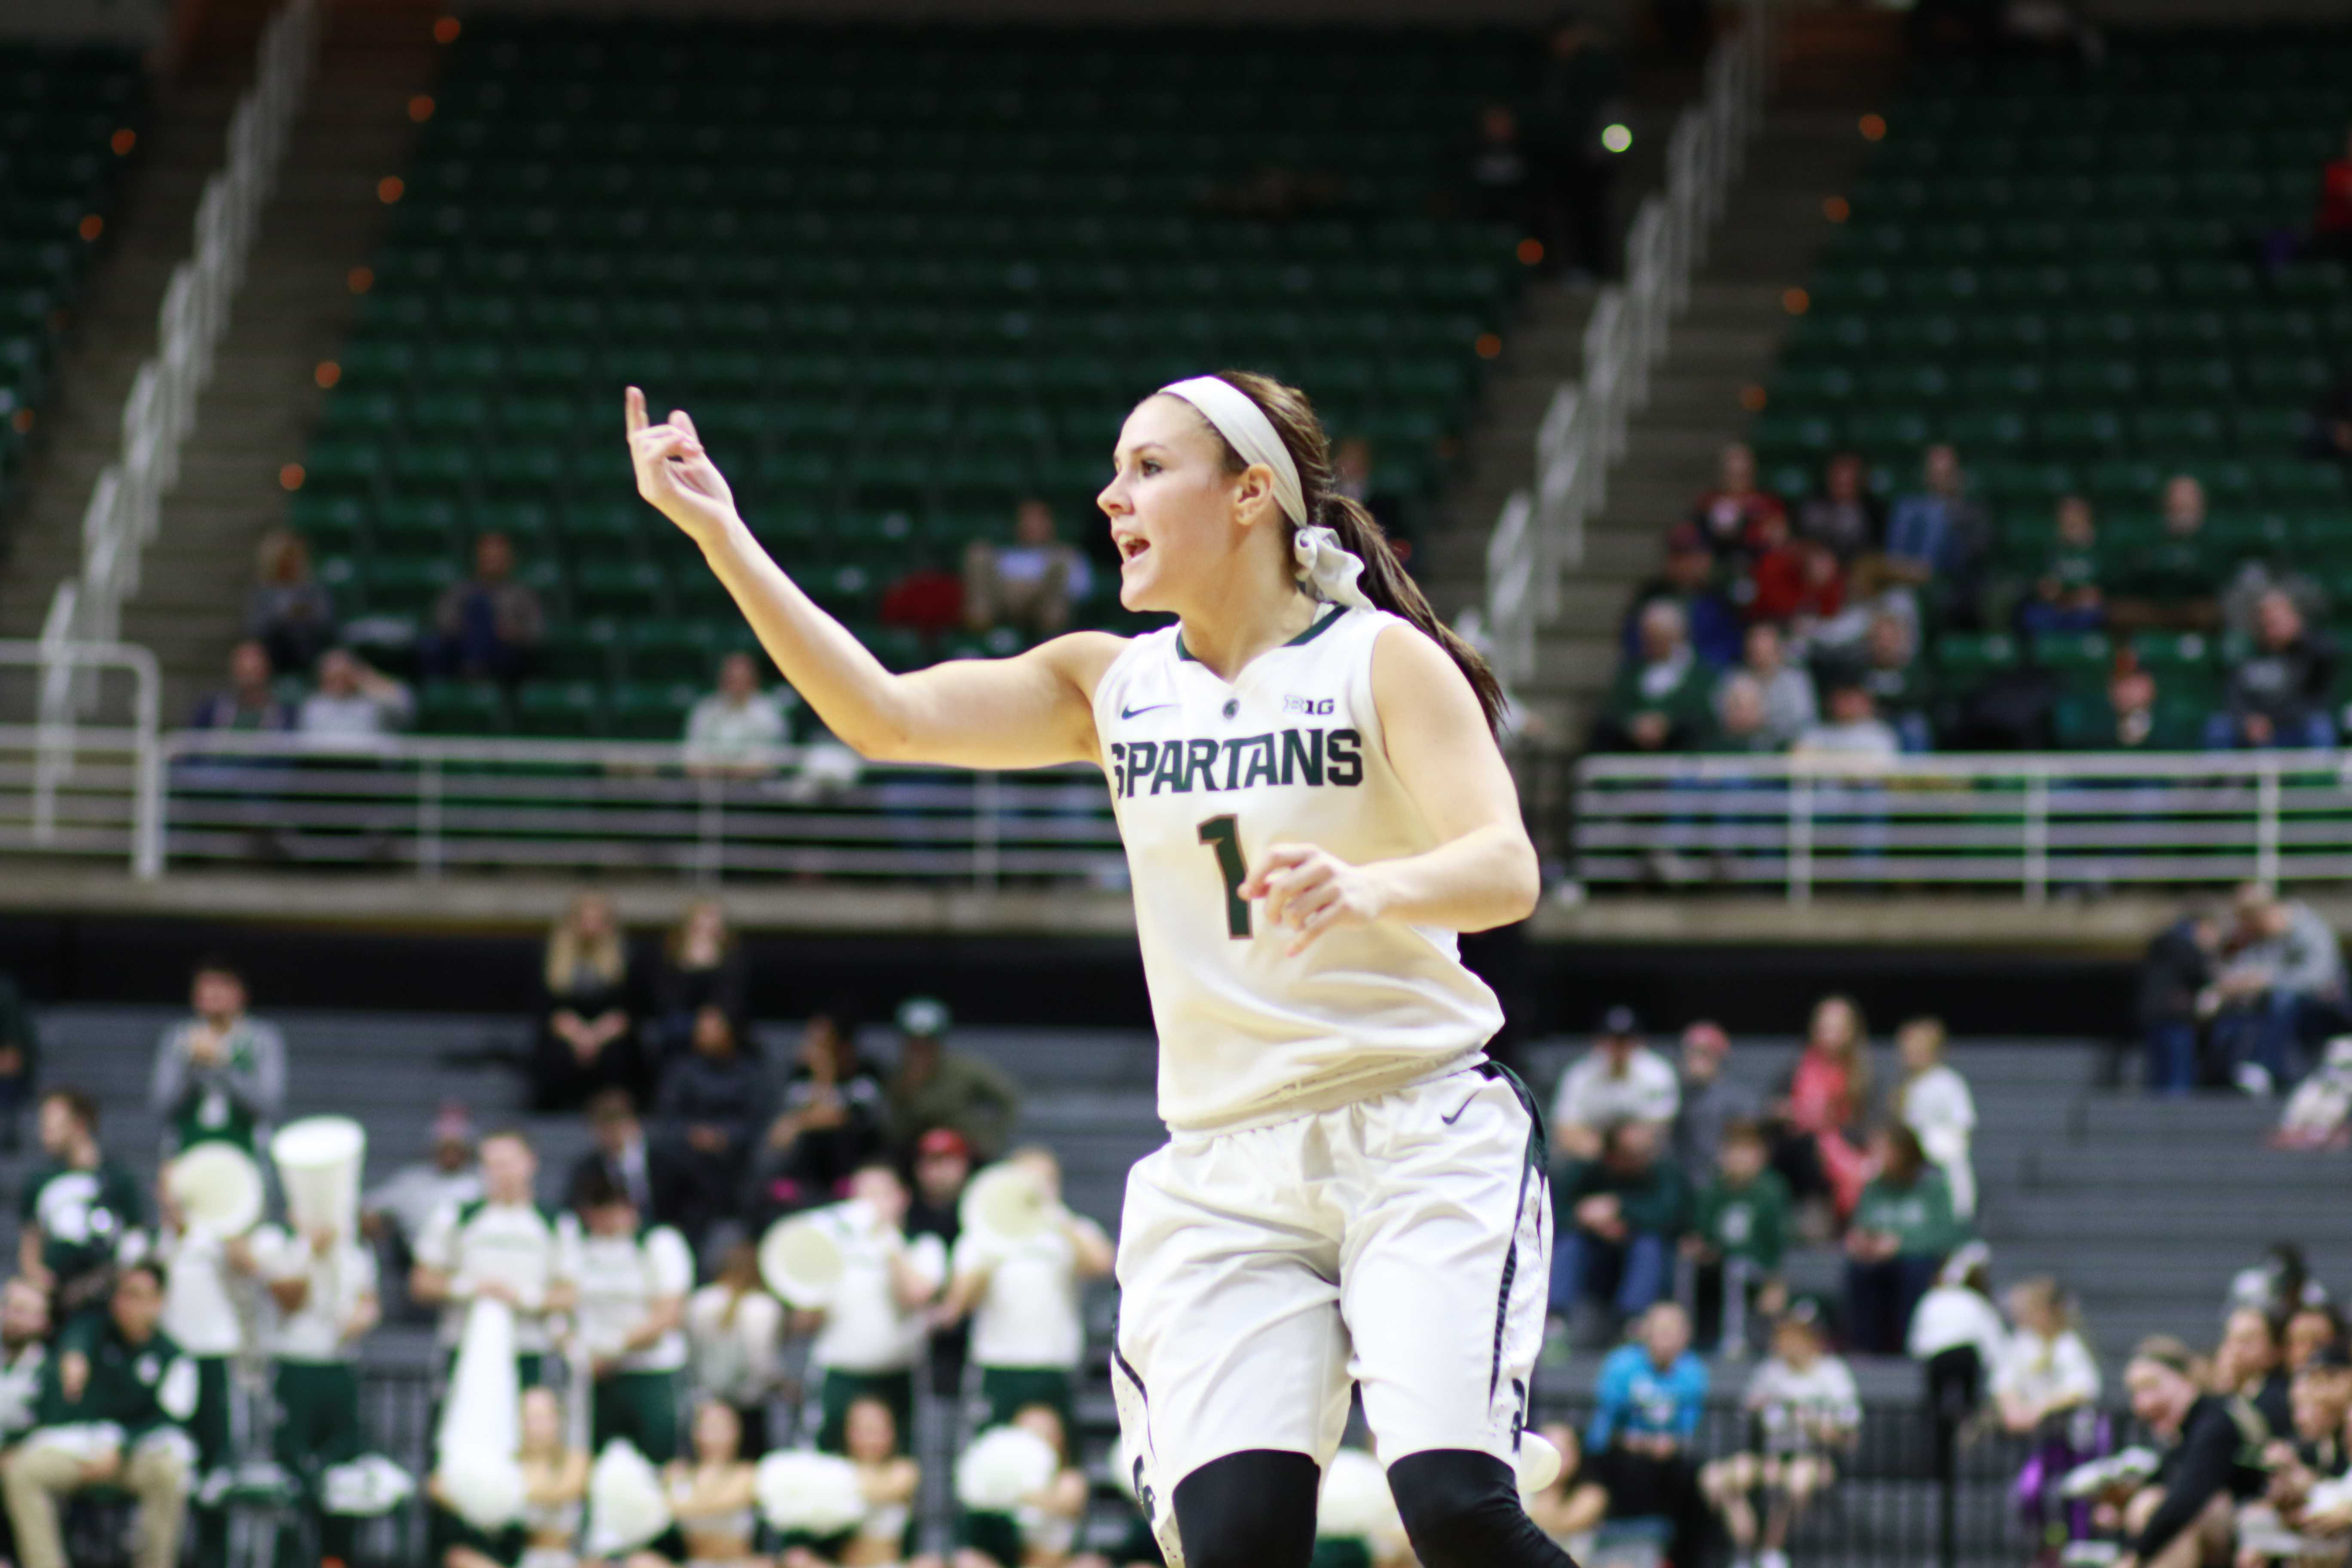 Spartans Win Fifth Straight, Beat Rival Wolverines 85-64